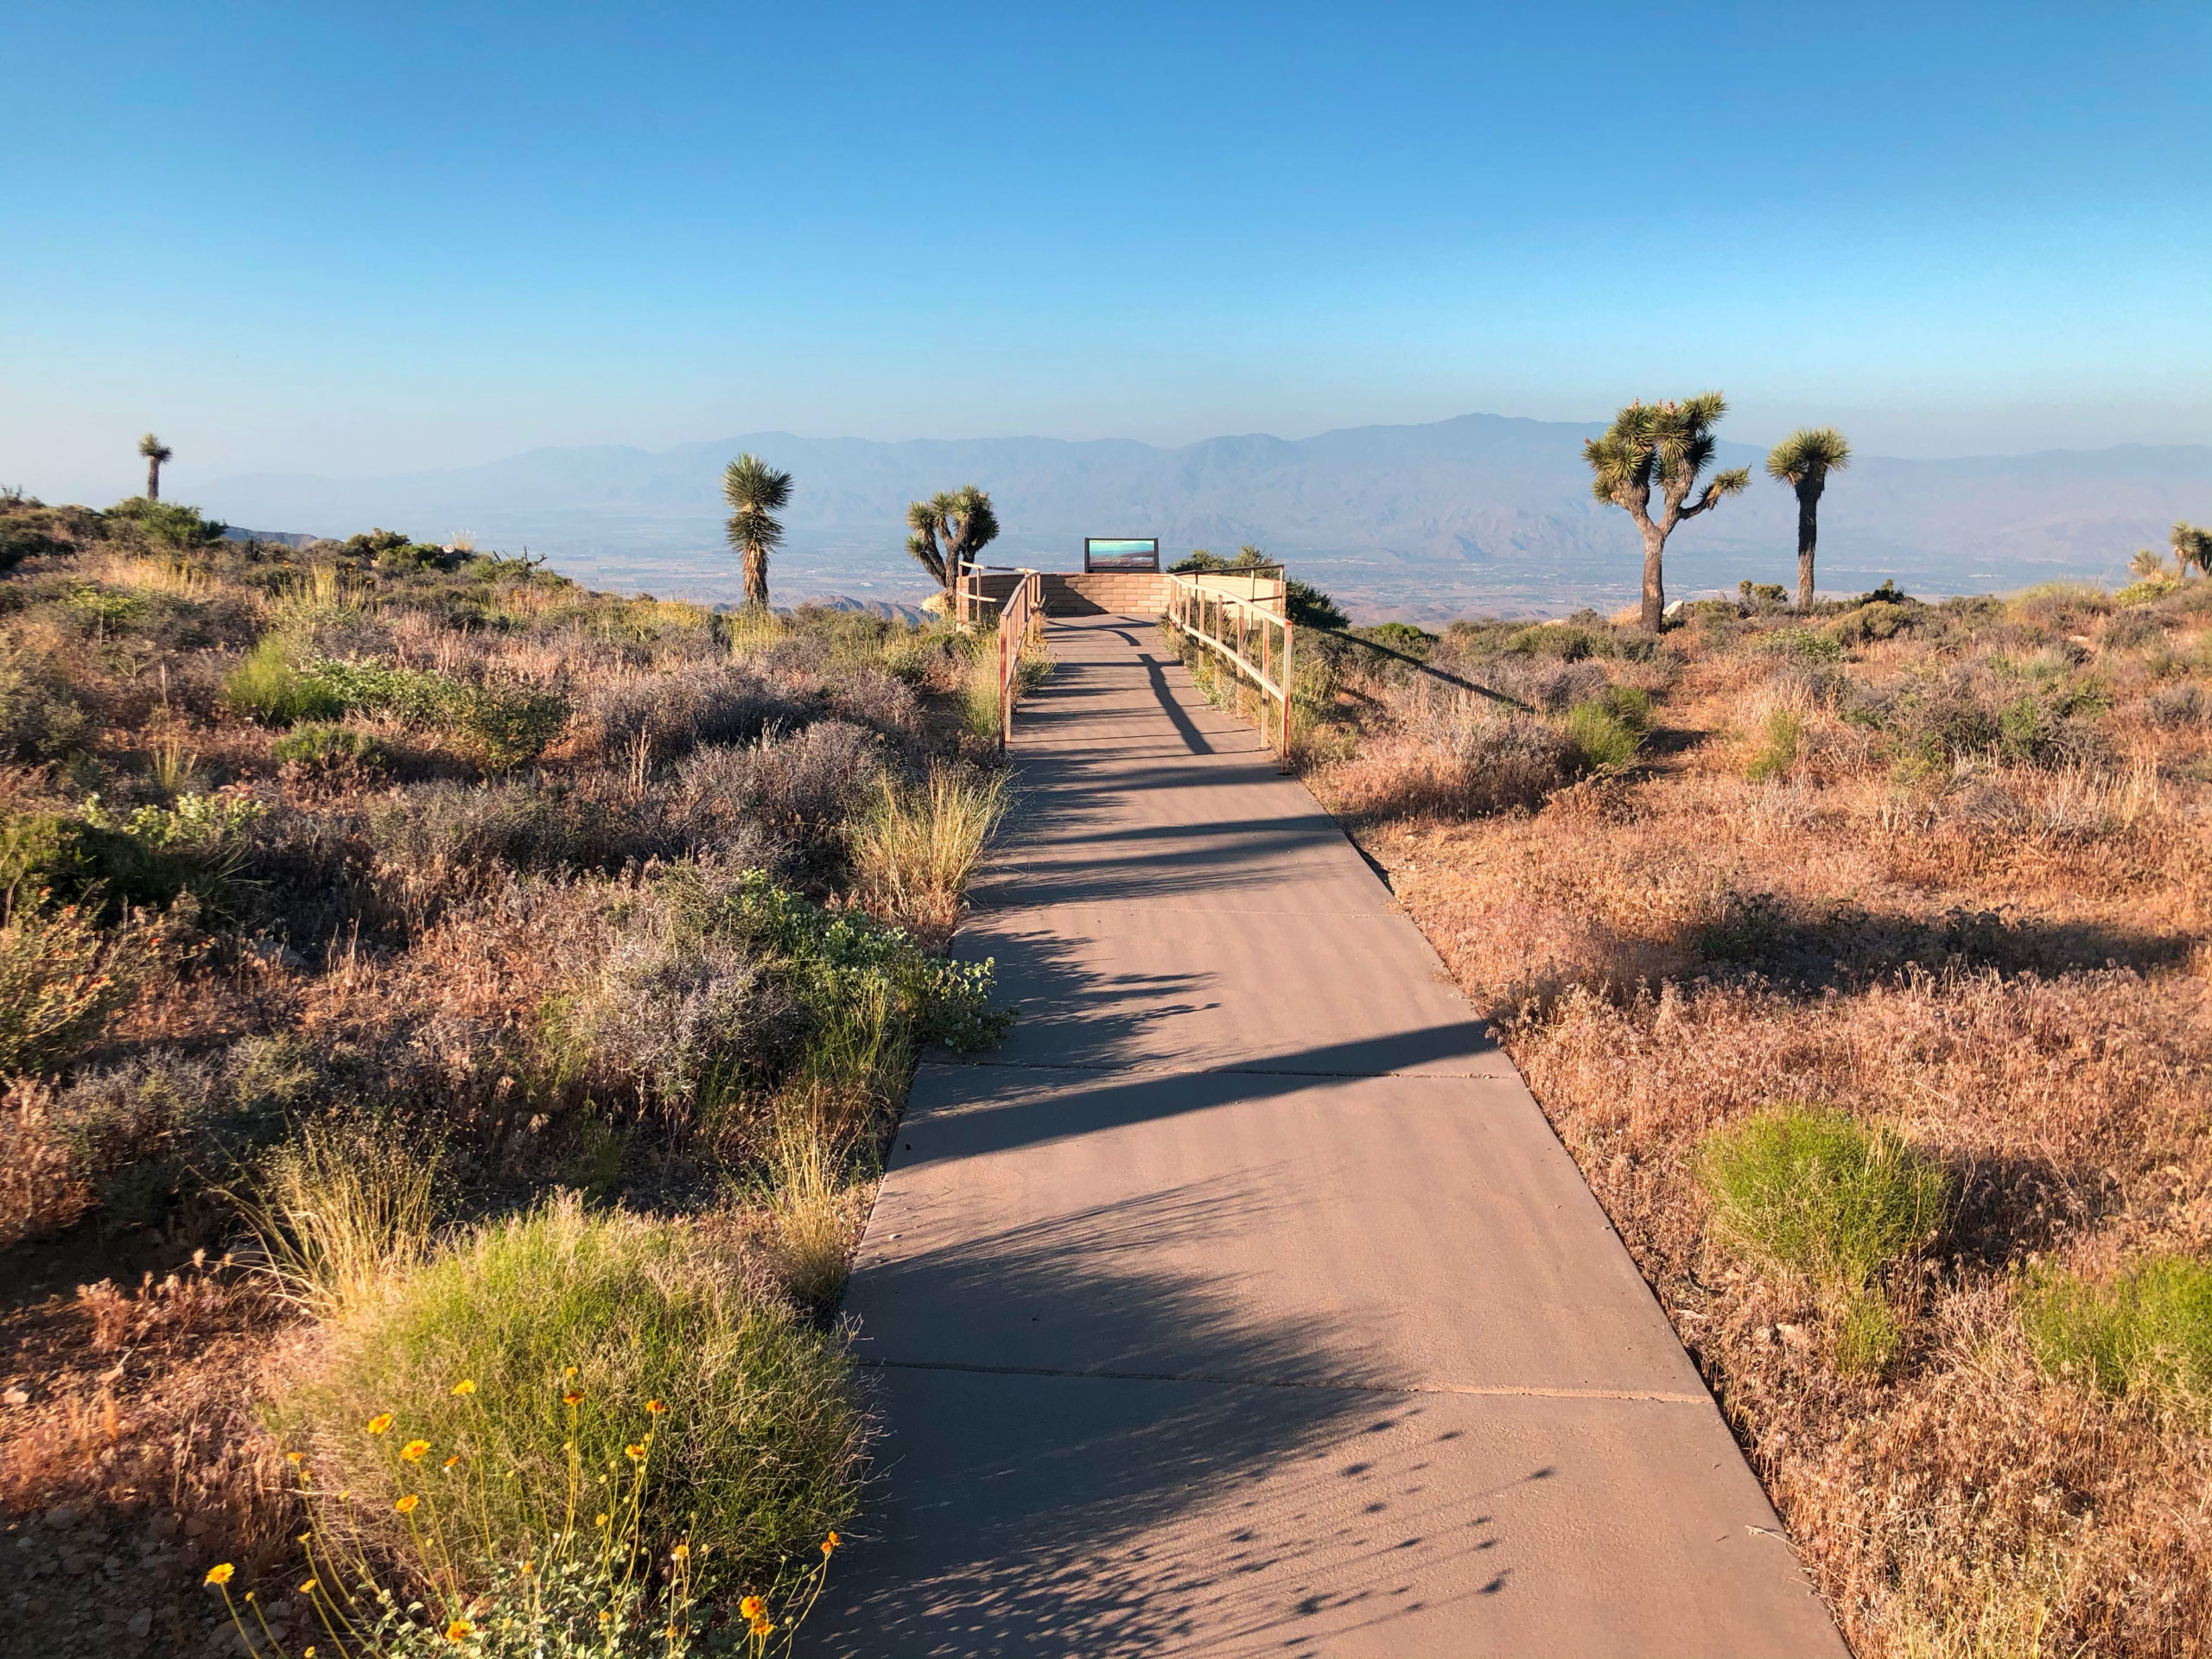 joshua-tree-national-park-adventure-tour-hiking-climbing-camping-ada-lookout-from-keys-view-2